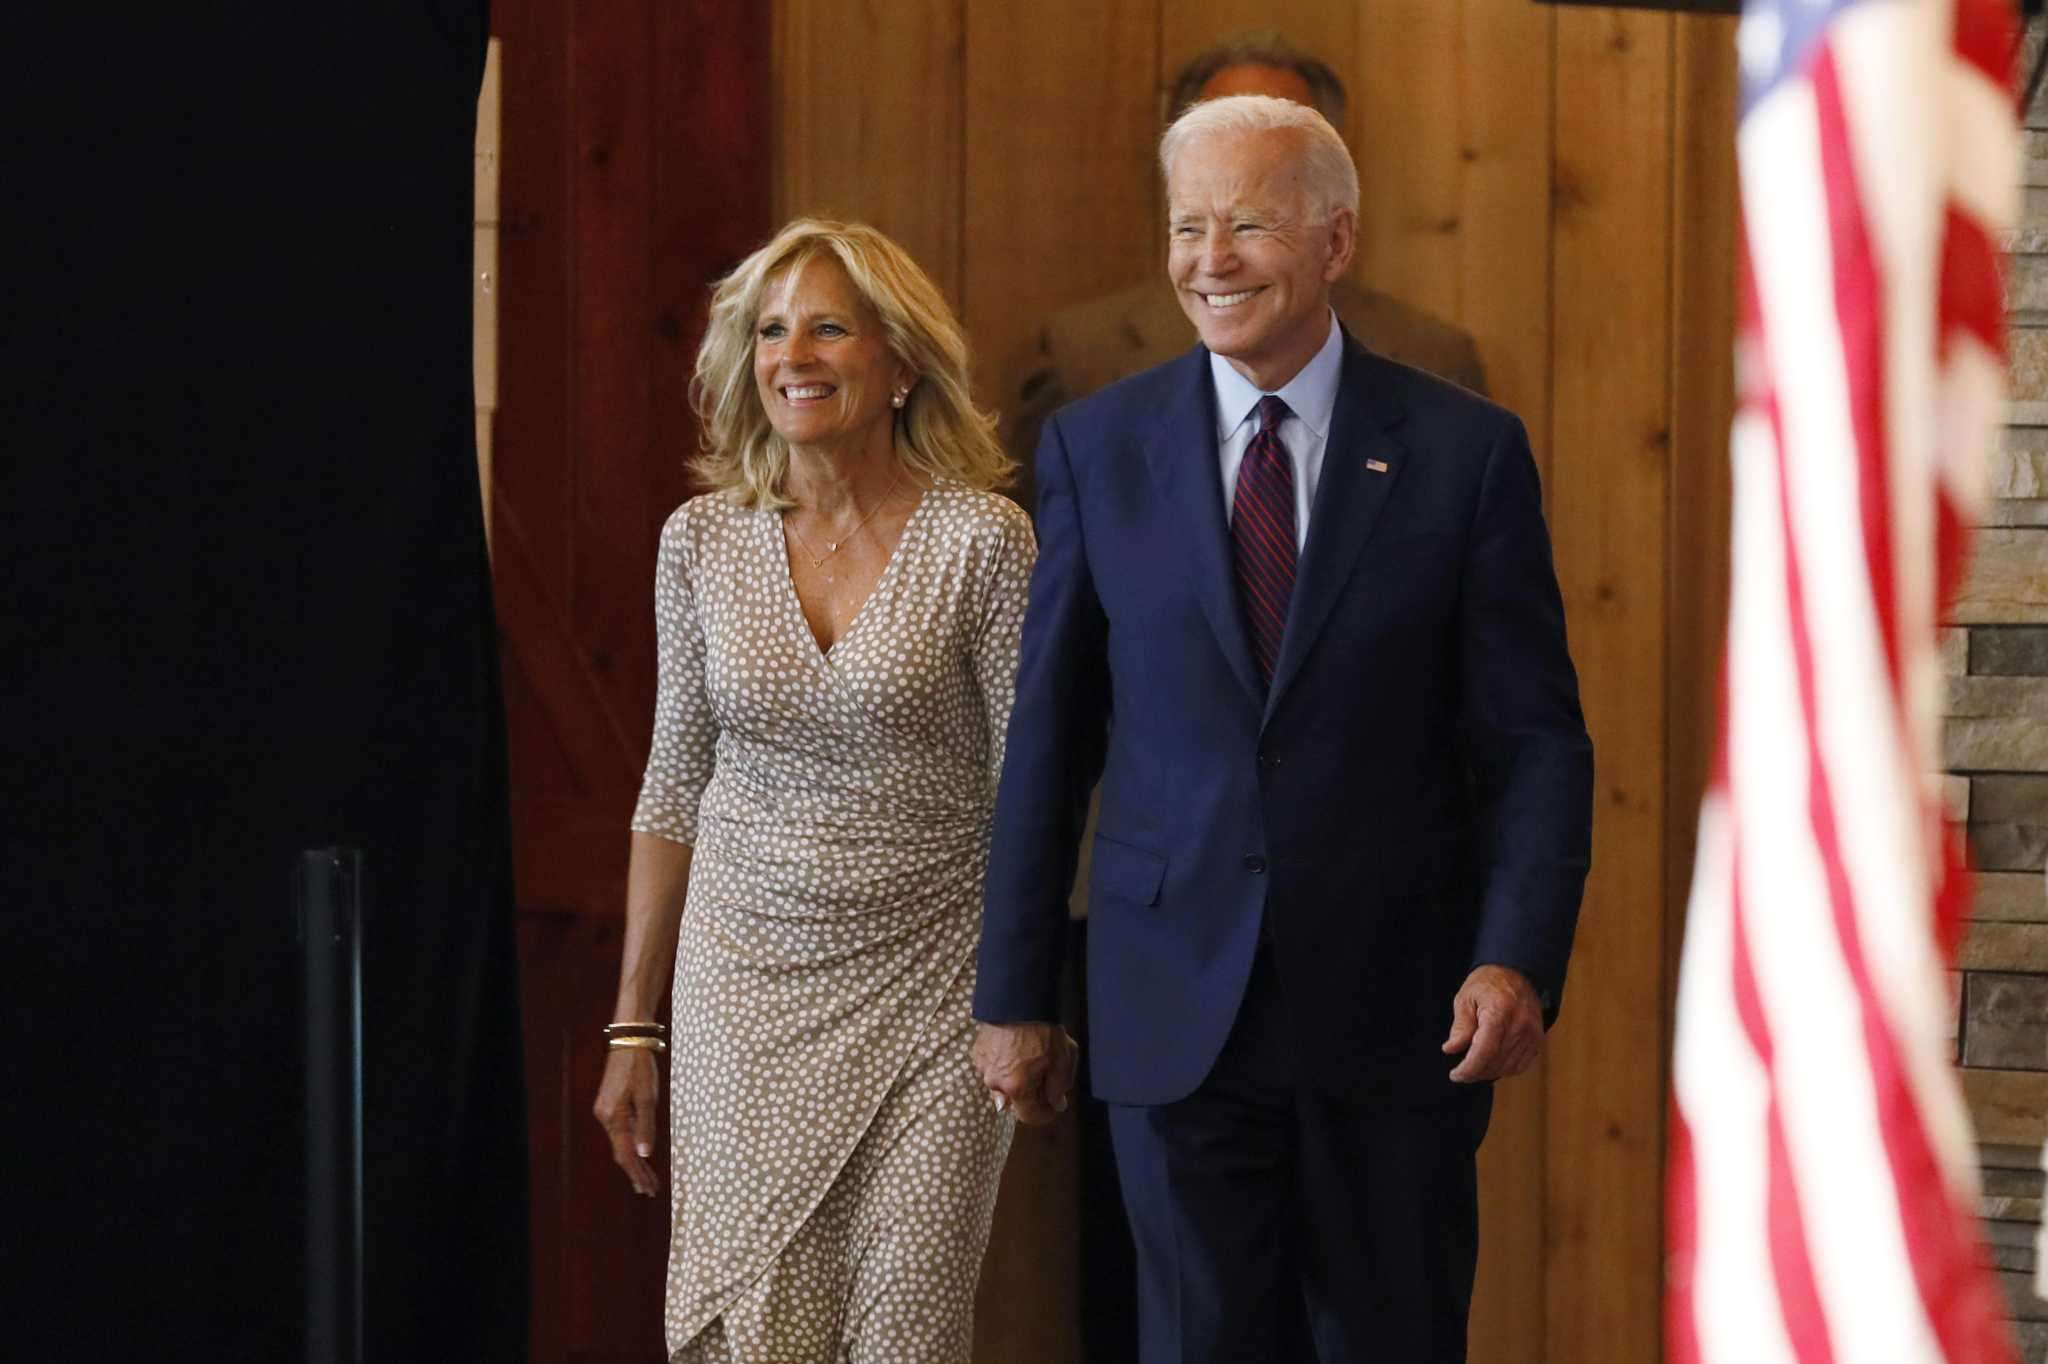 Joe Biden's wife to campaign in Connecticut